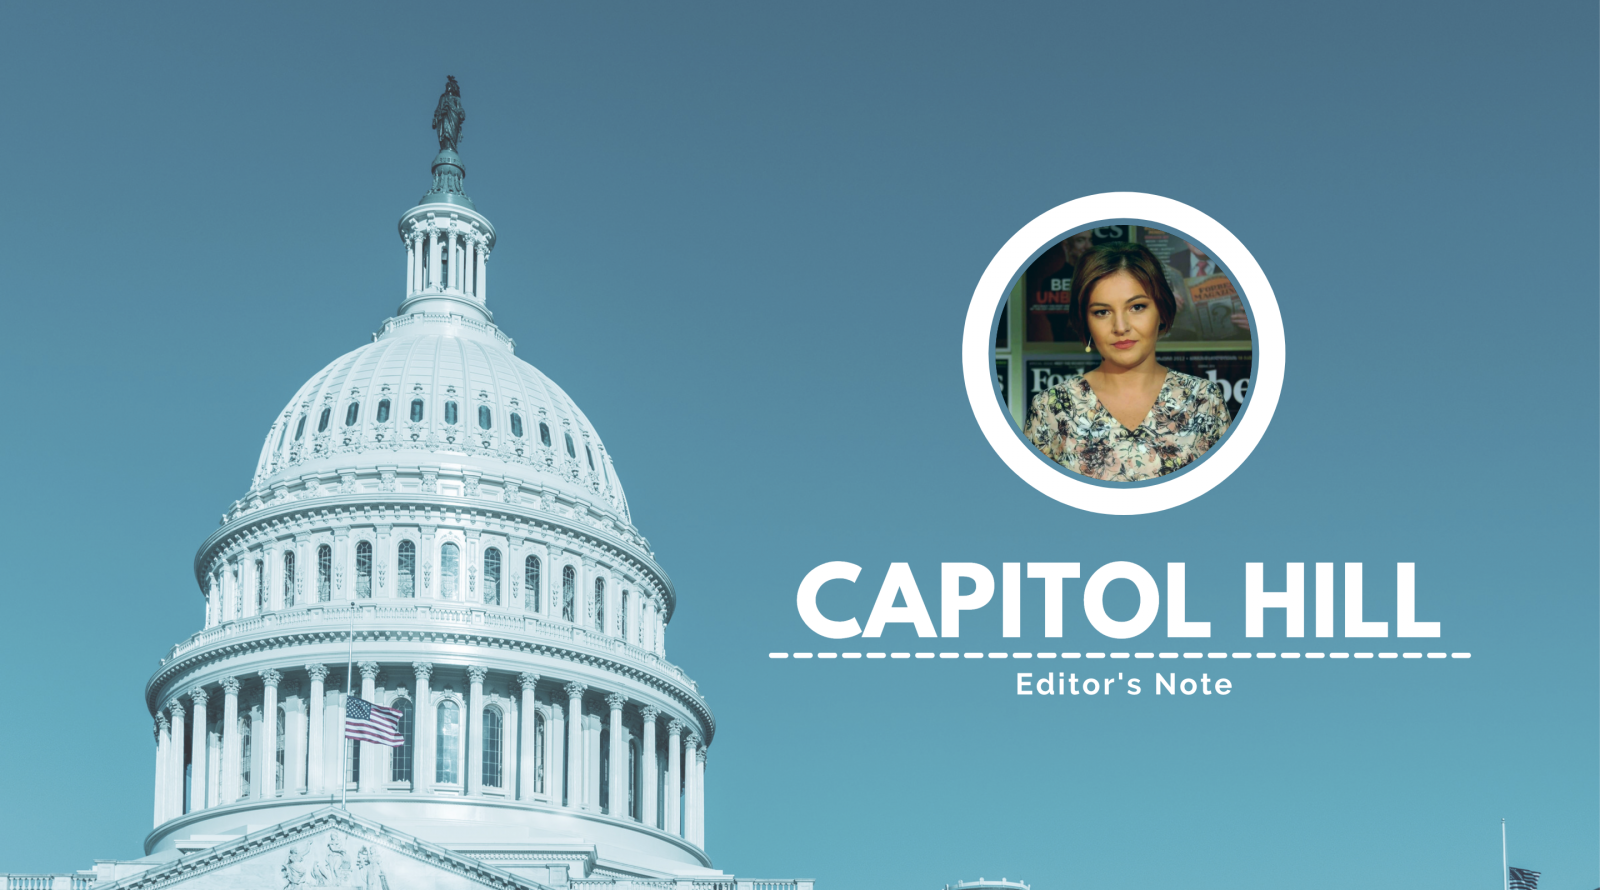 Capitol Hill - Editor's Note